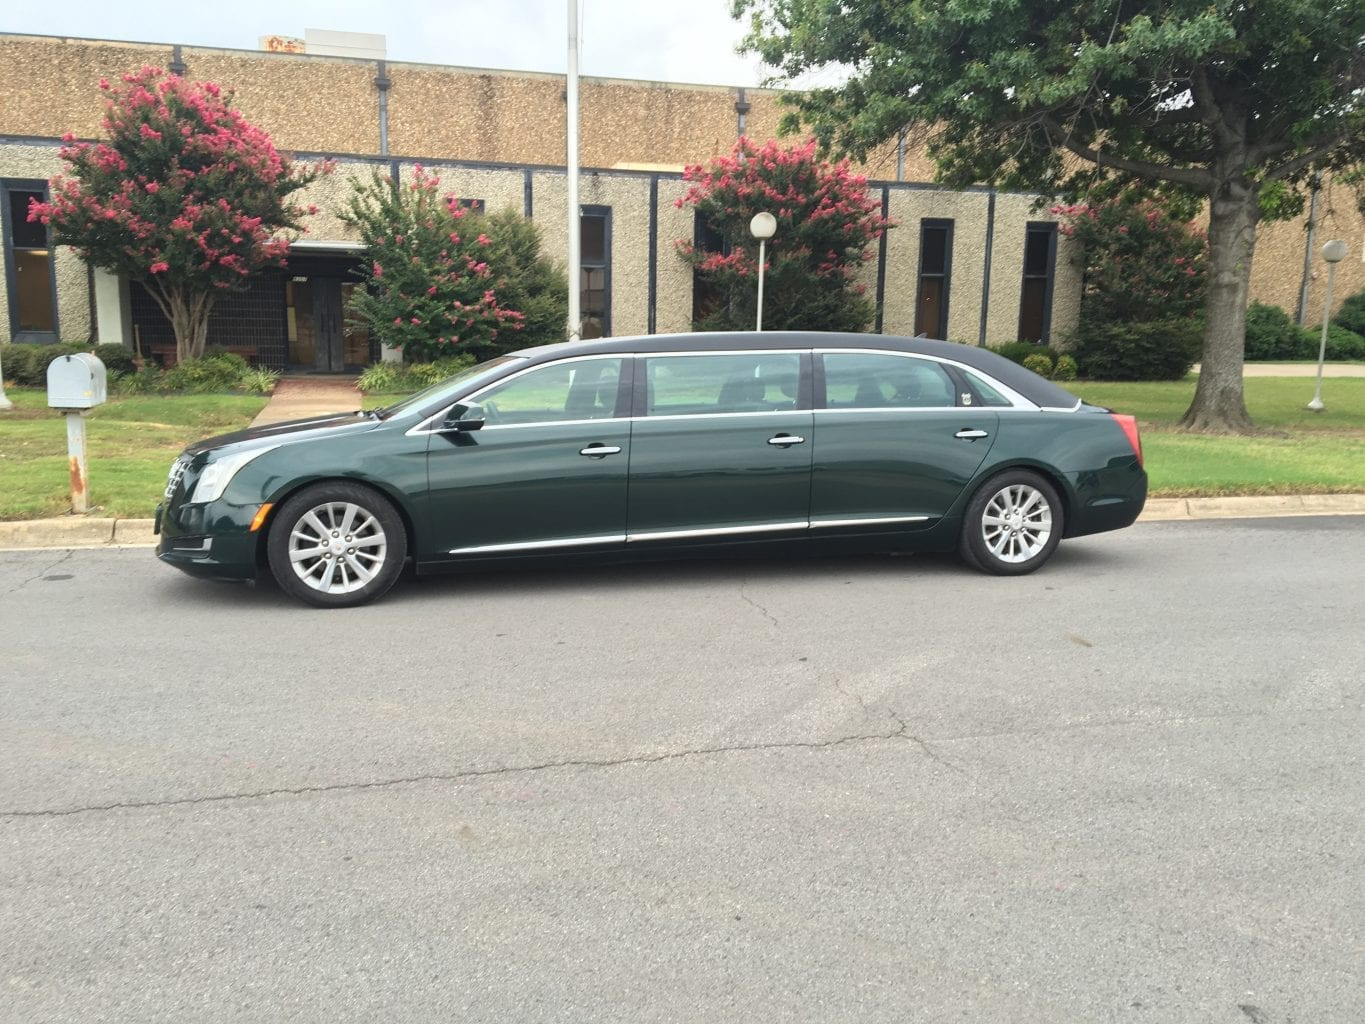 2014-Cadillac-Six-Door-Limo-for-Sale